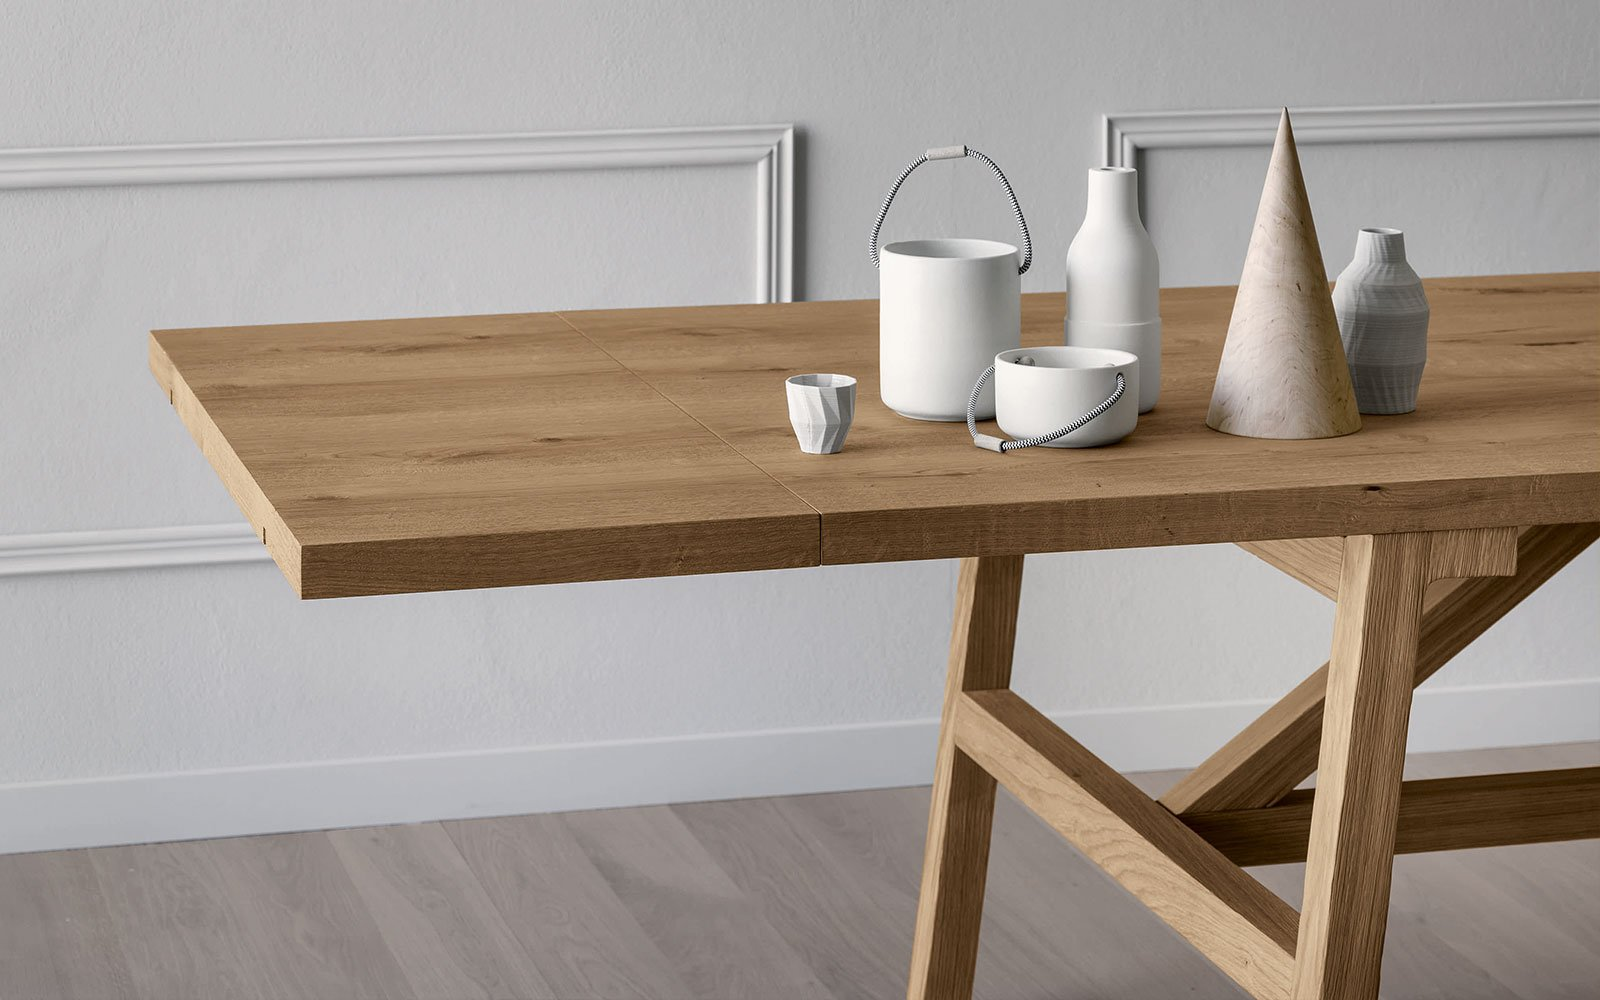 FRATTIONO modern wooden table miniforms